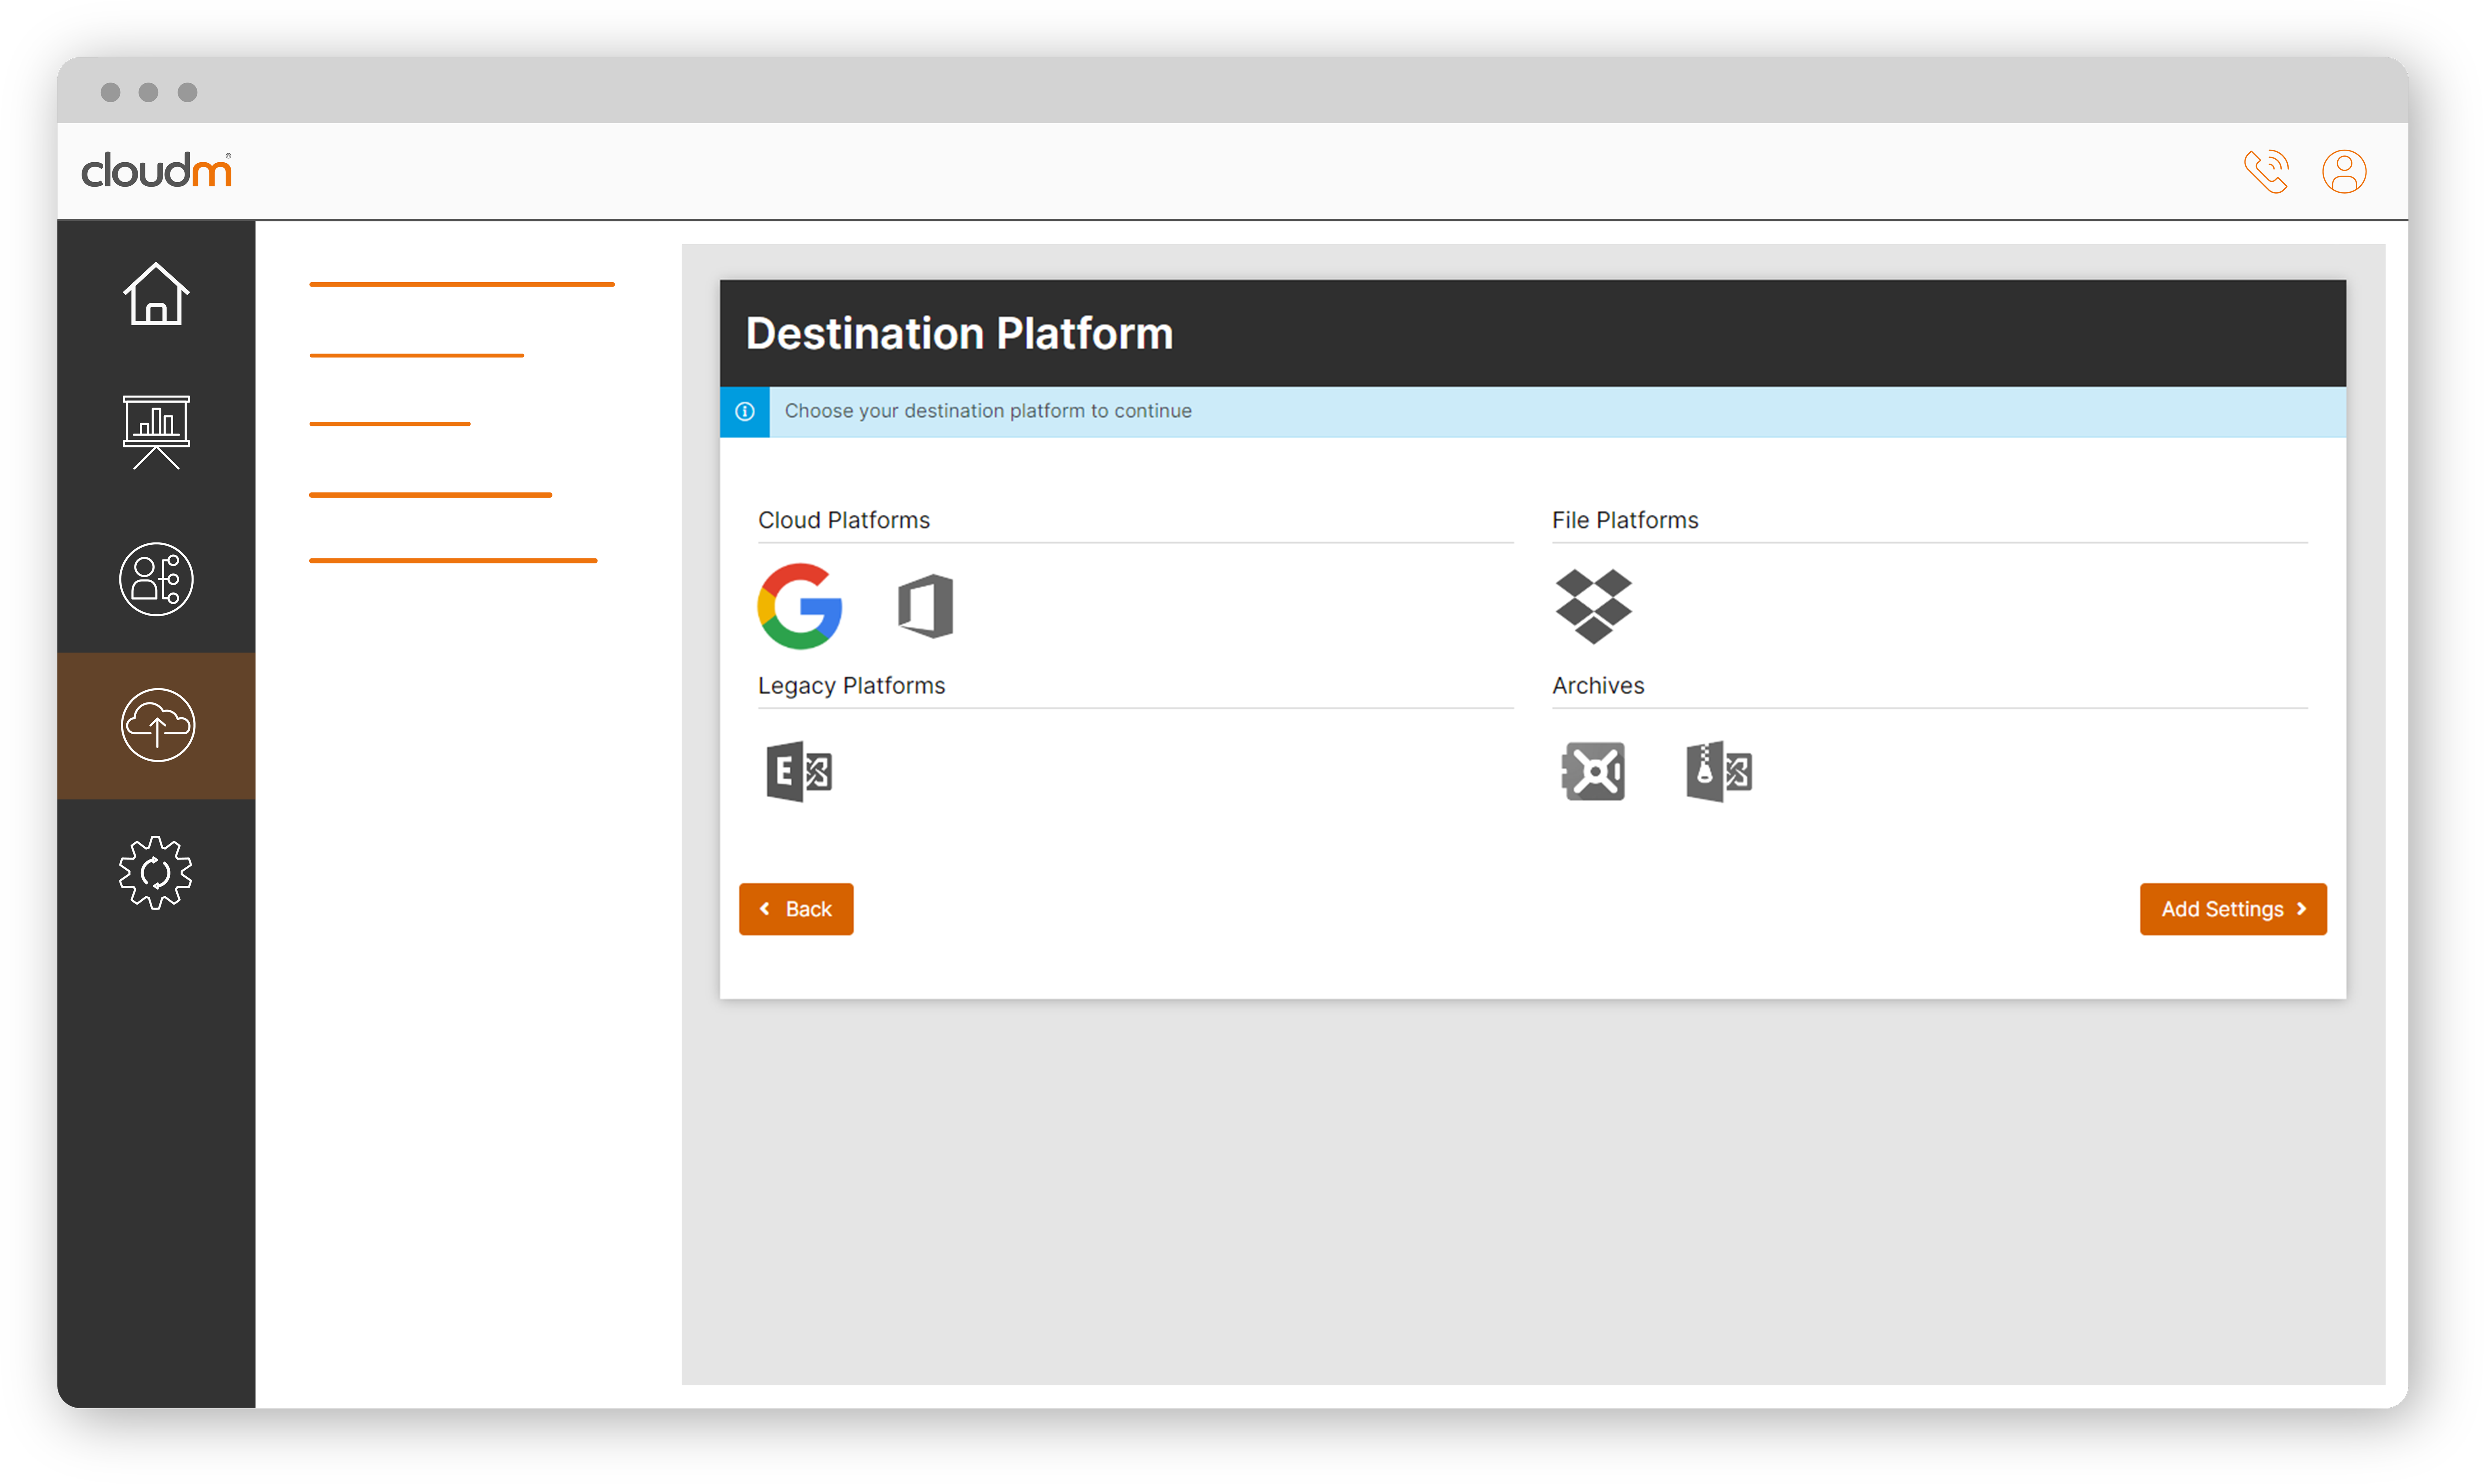 live summary dashboard on the cloud migration tool from CloudM